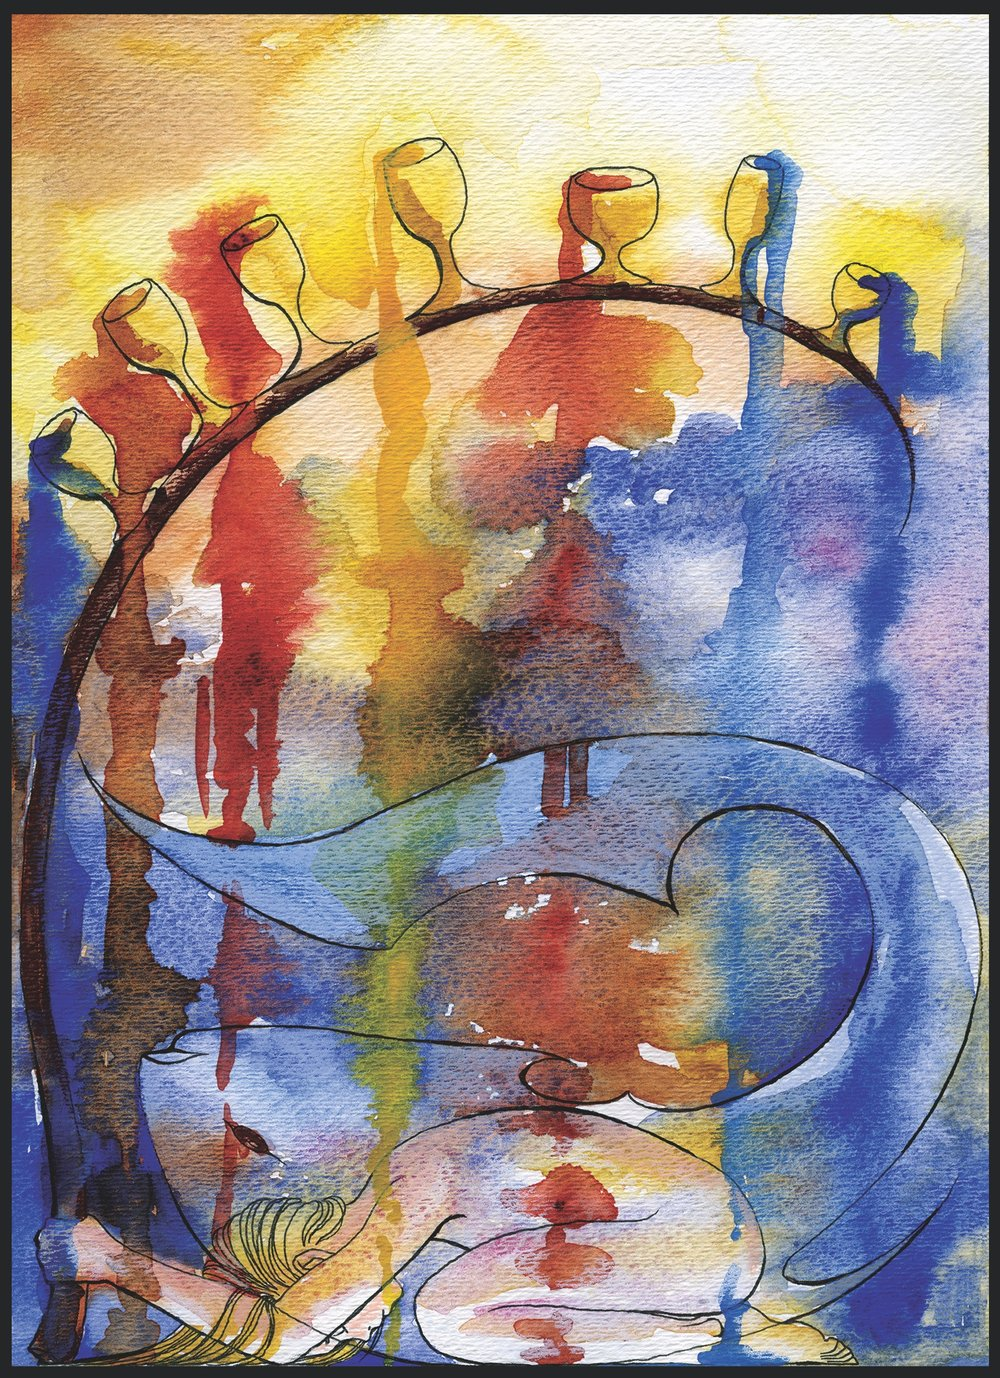 The Seven of Cups (2004). Ink, watercolor, and prismacolor on paper.